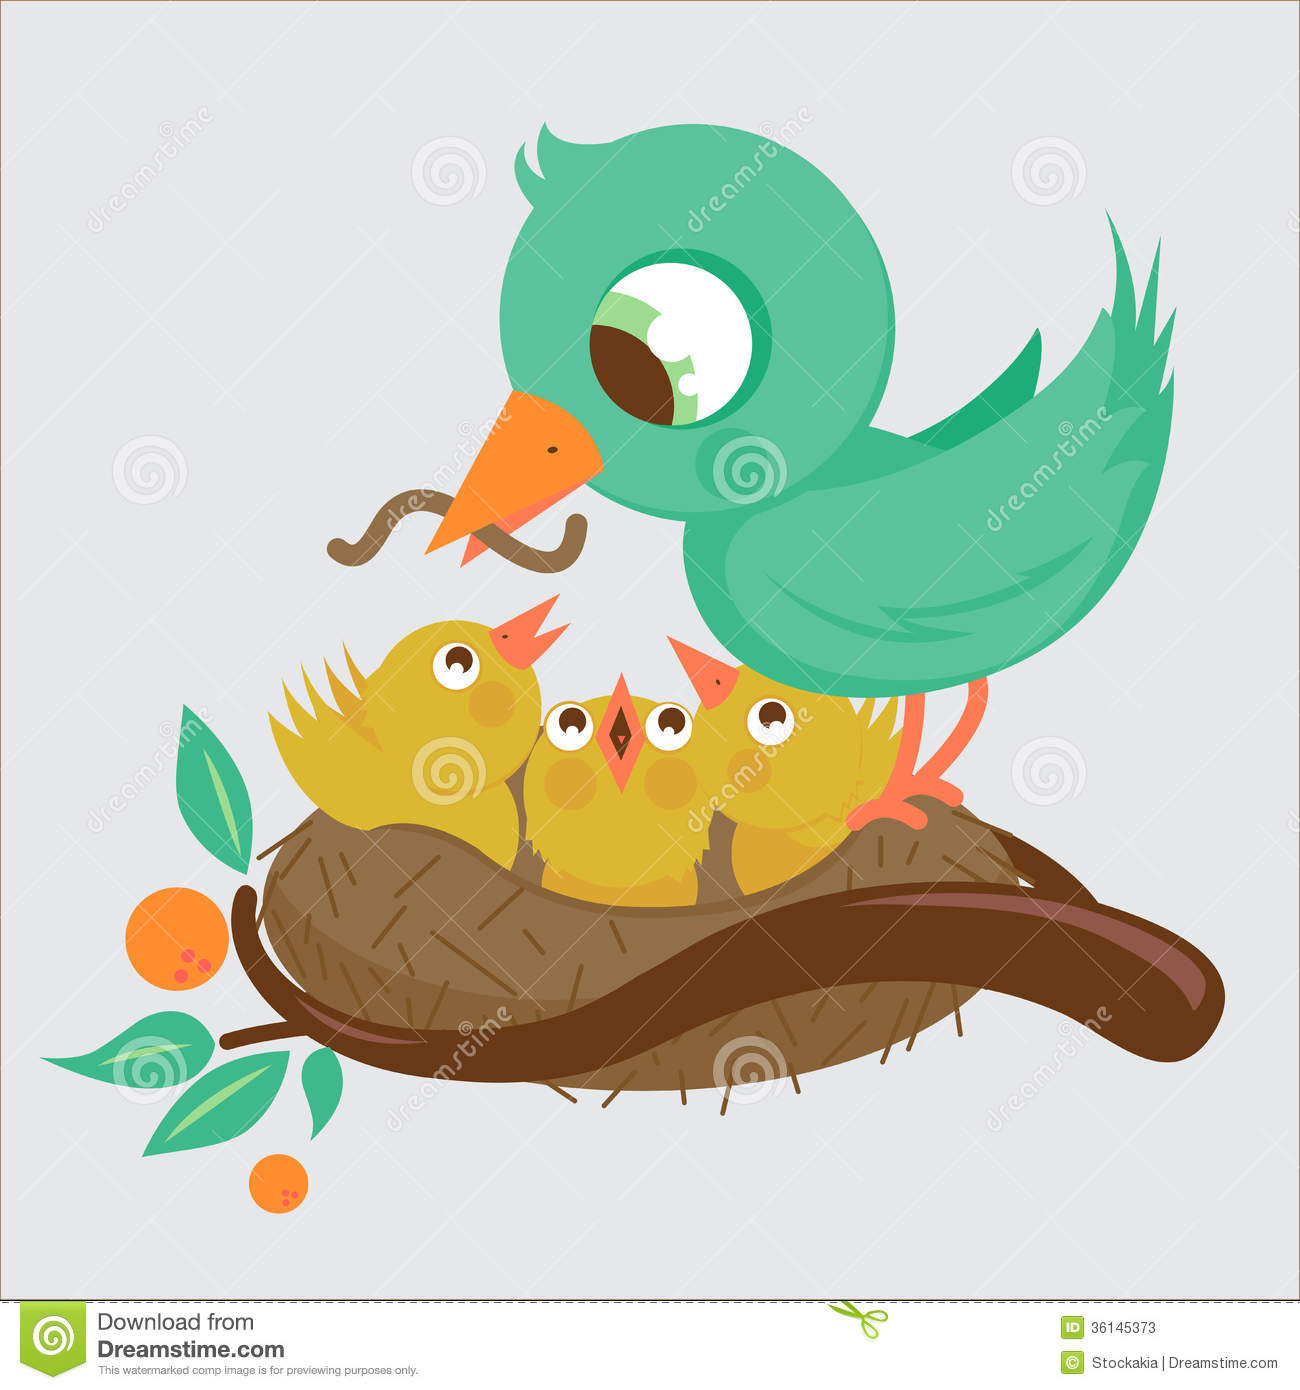 Brds clipart mommy Birds Bird Baby collection clipart